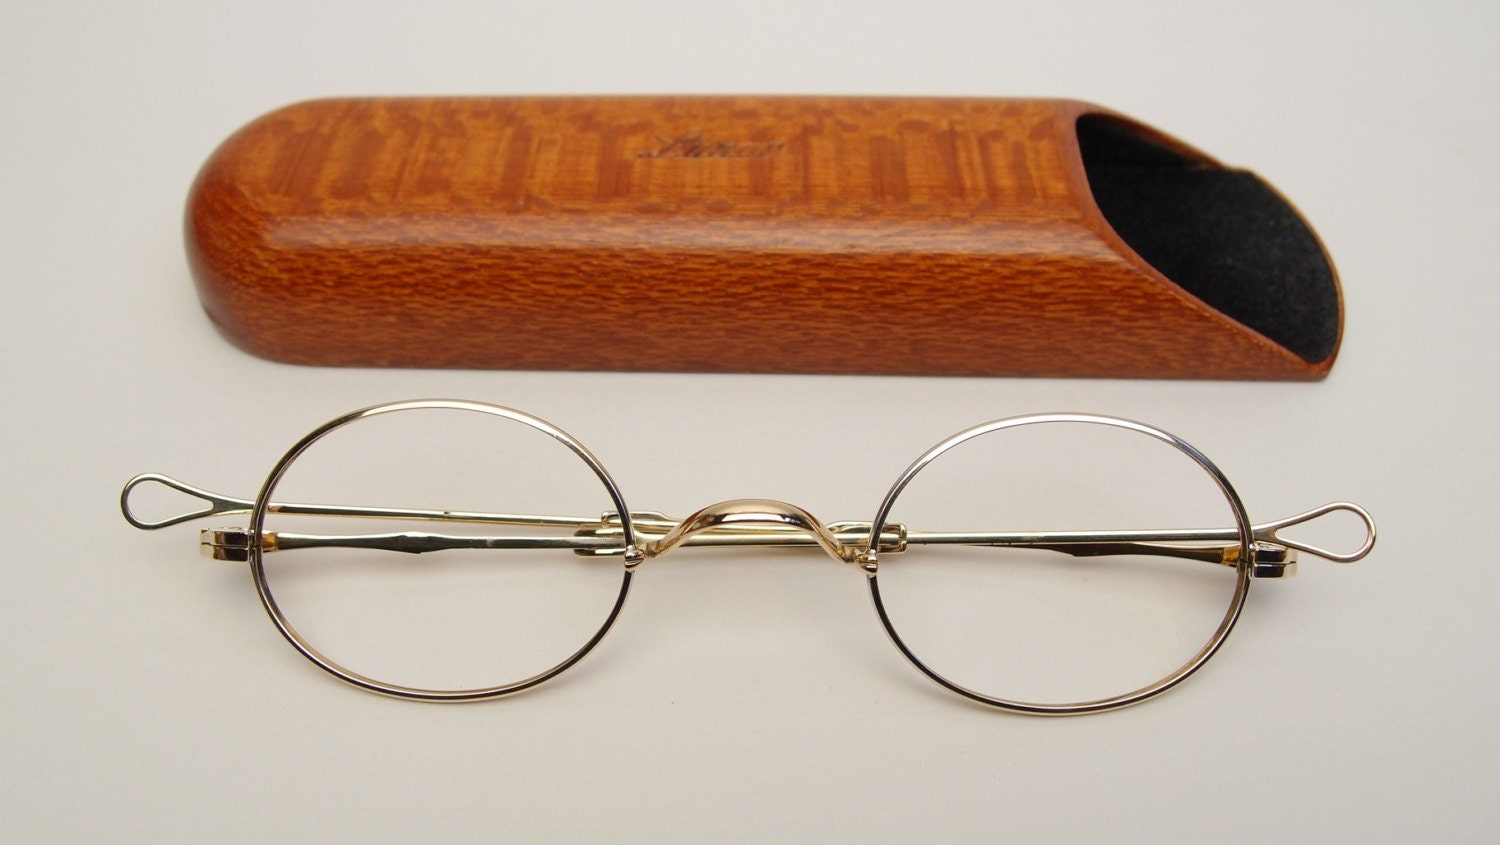 Glasses Frames Saddle Bridge : Vintage Lunor I Eyeglasses Frames Germany Made Optical Eyewear